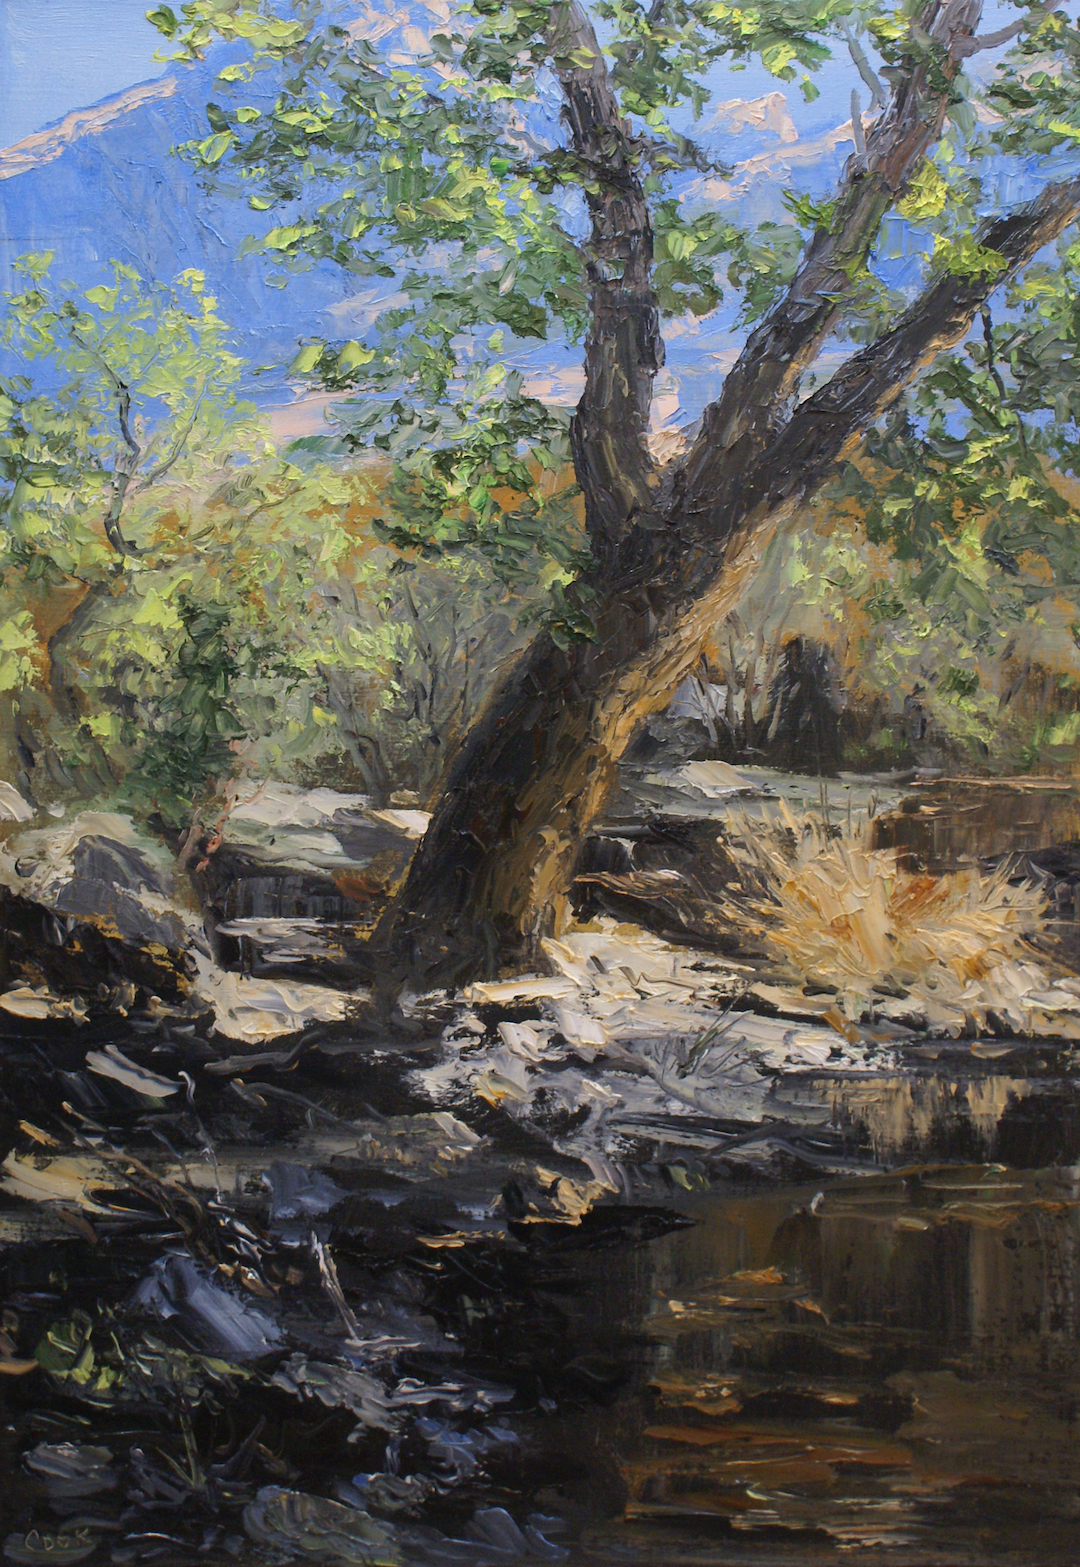 Sabino Creek Study #20 by  James Cook - Masterpiece Online